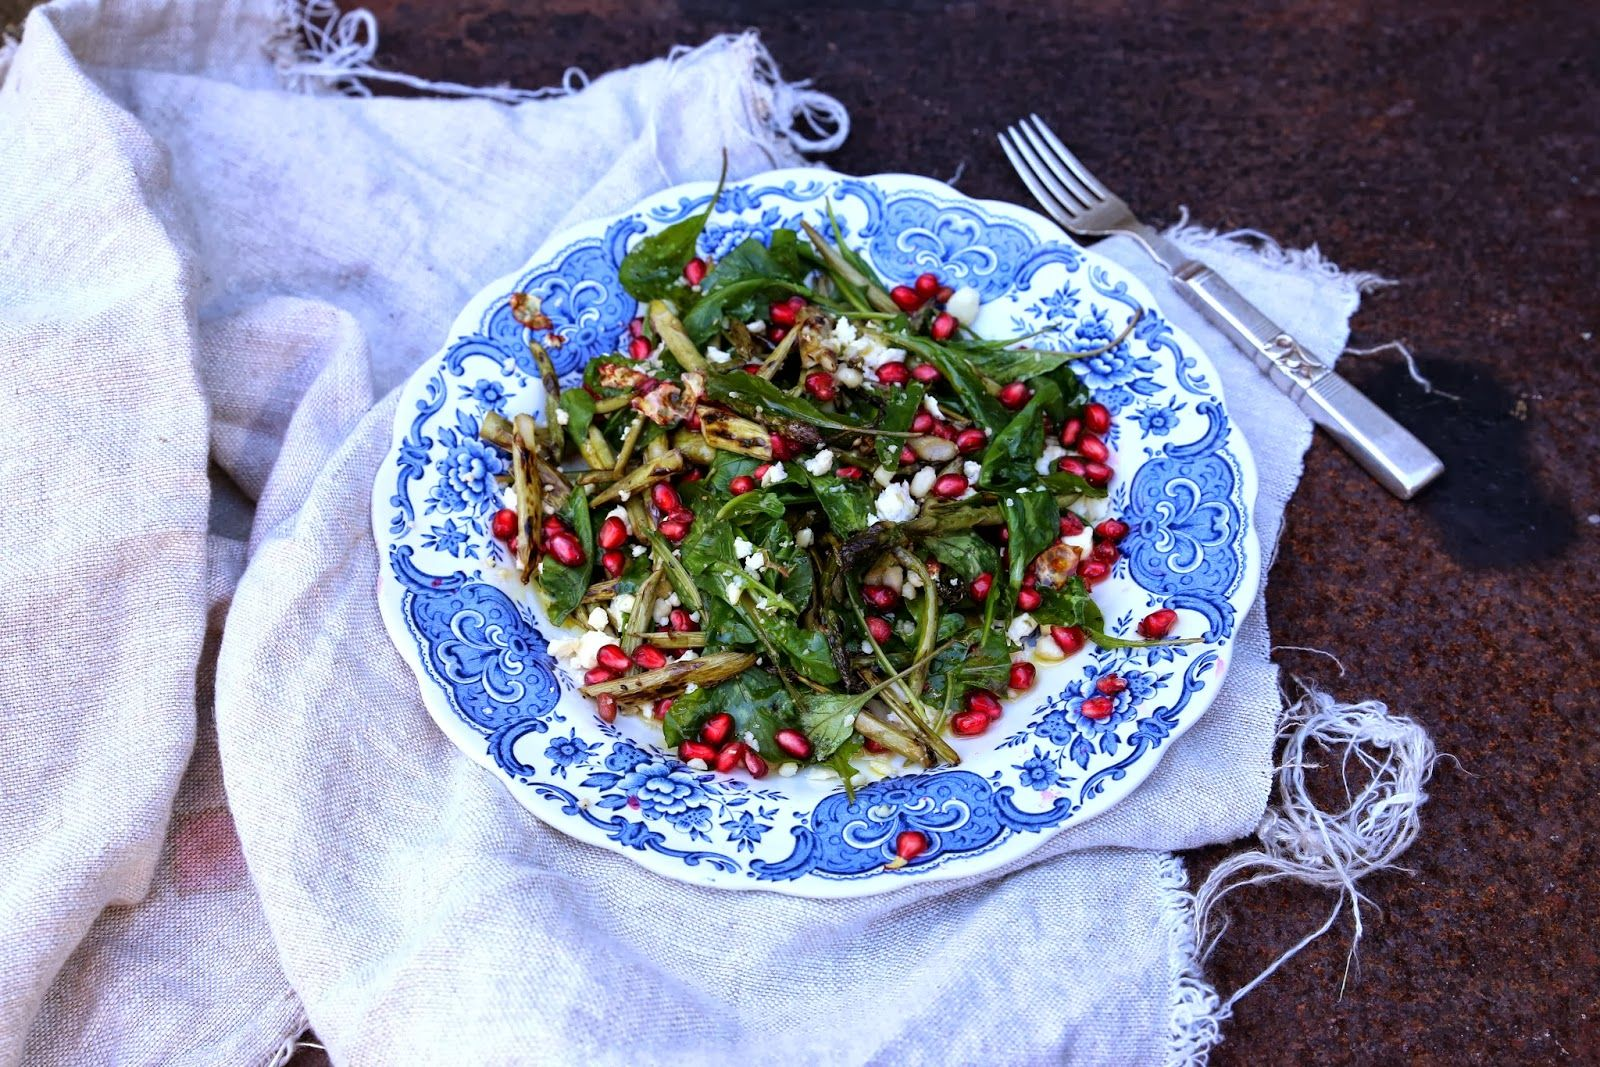 petite kitchen: SPRING ASPARAGUS AND ROCKET SALAD WITH GOATS CHEESE AND POMEGRANATE